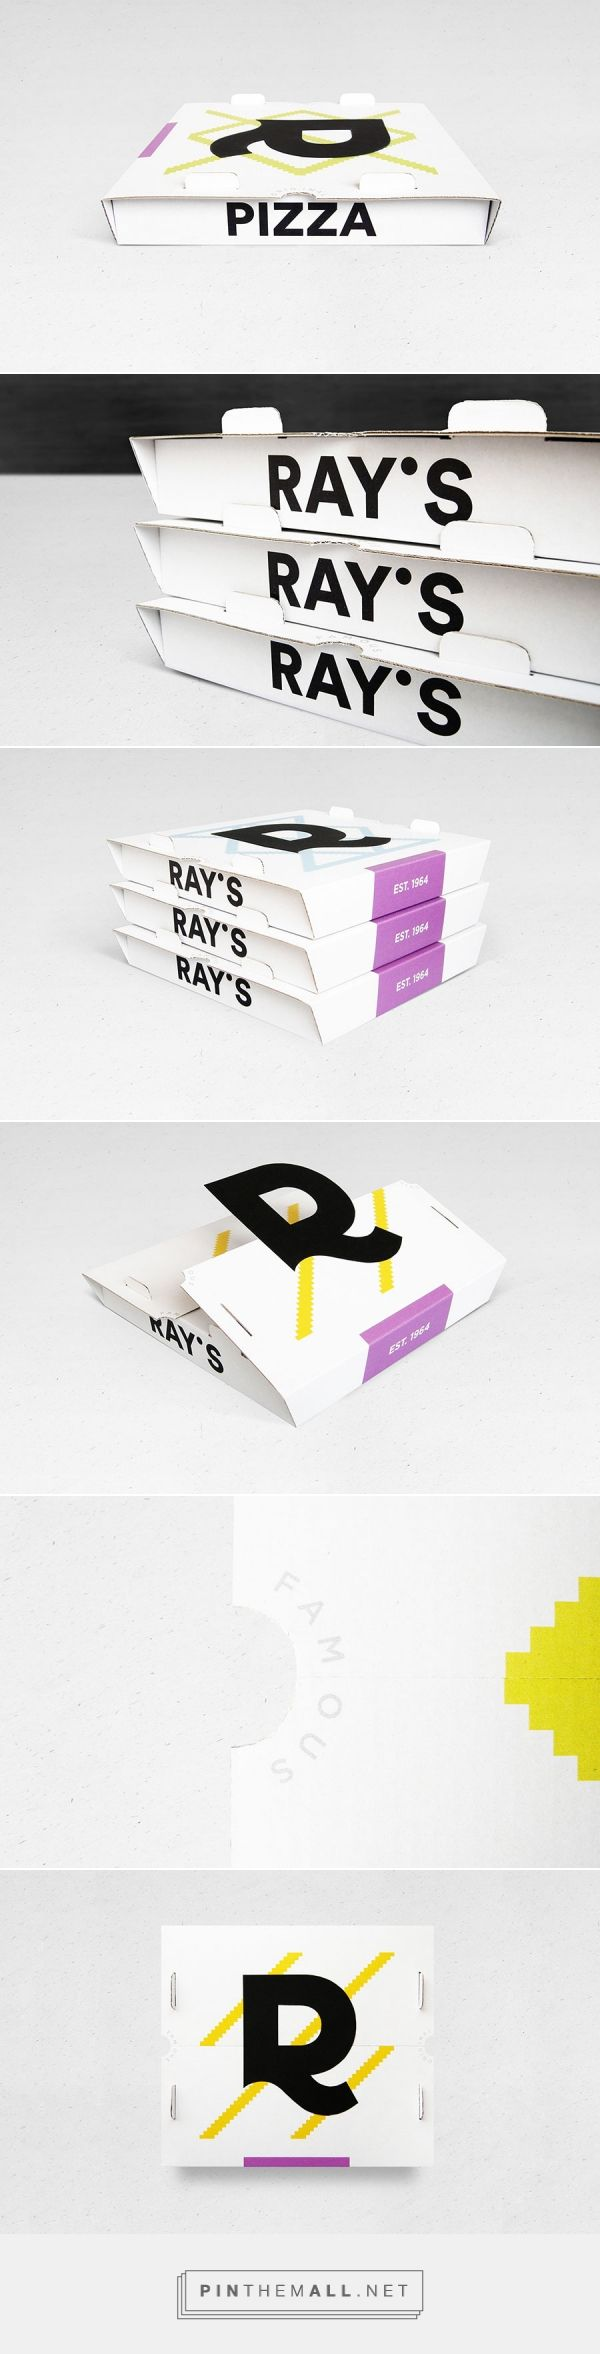 Ray's Pizza (Student Project) - Packaging of the World - Creative Package Design Gallery - http://www.packagingoftheworld.com/2016/12/rays-pizza-student-project.html